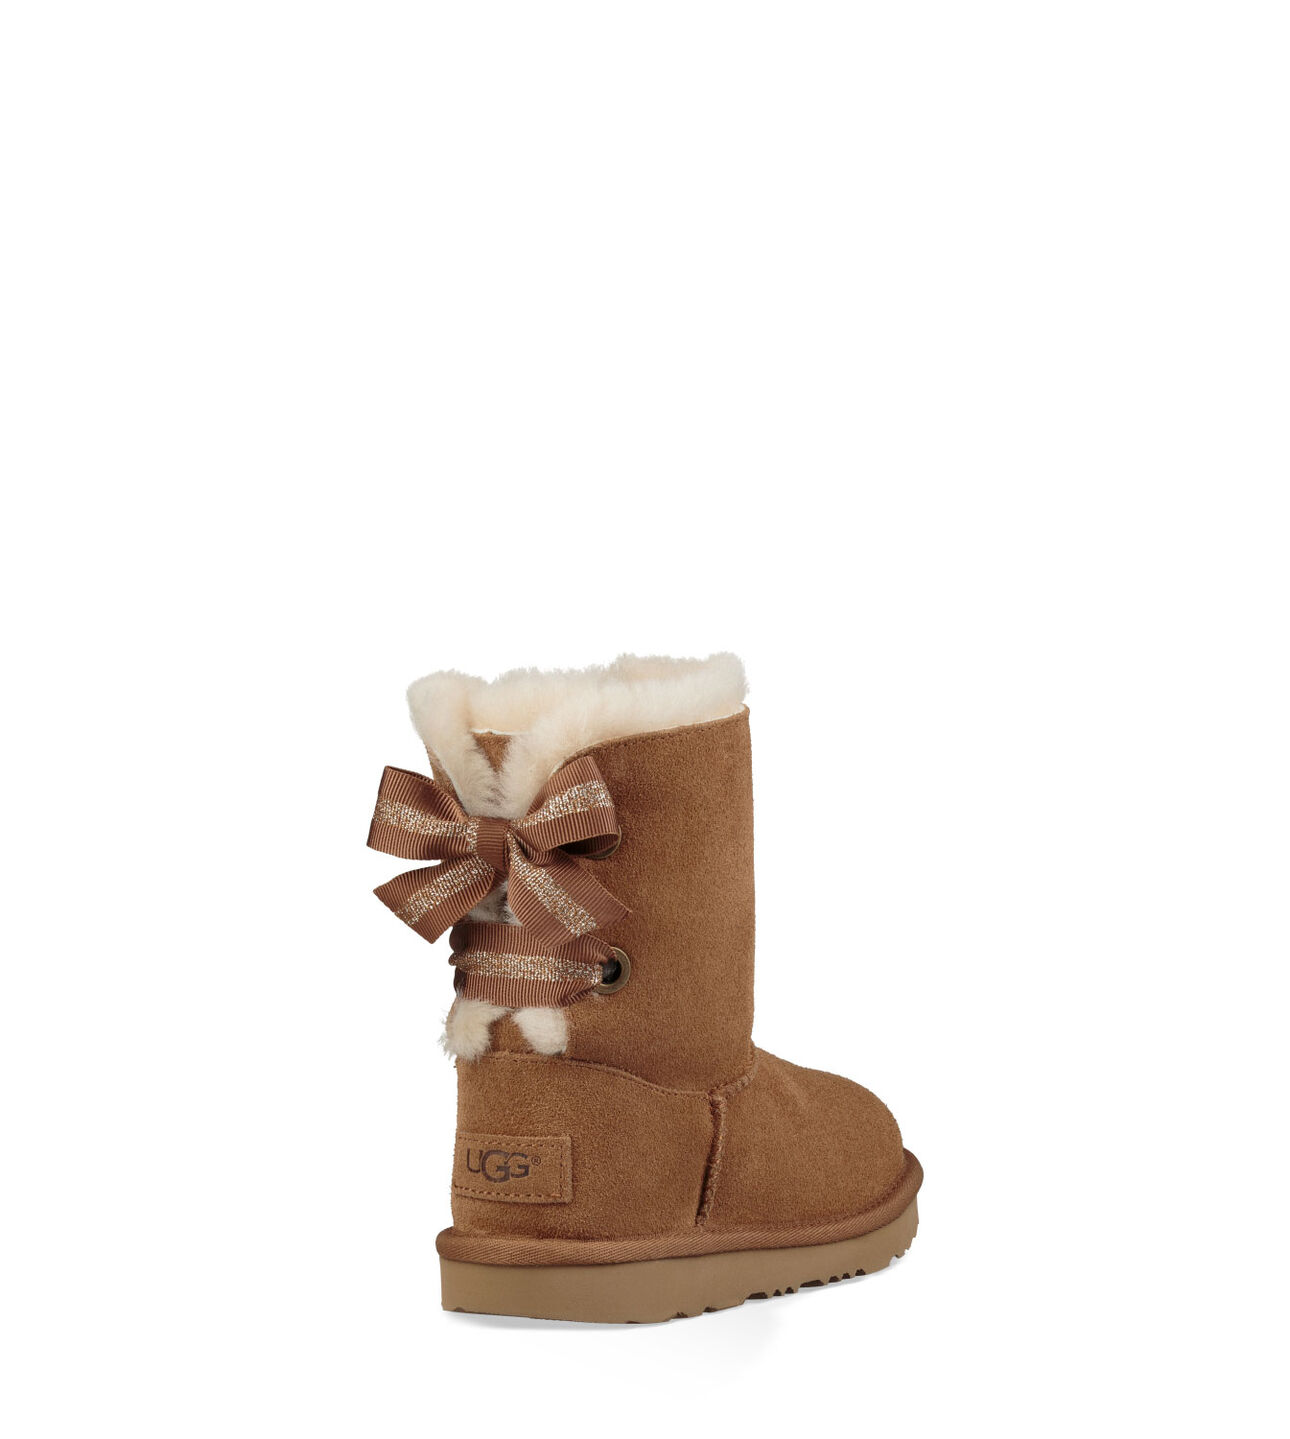 c5c5fc77b32 Customizable Bailey Bow II Boot